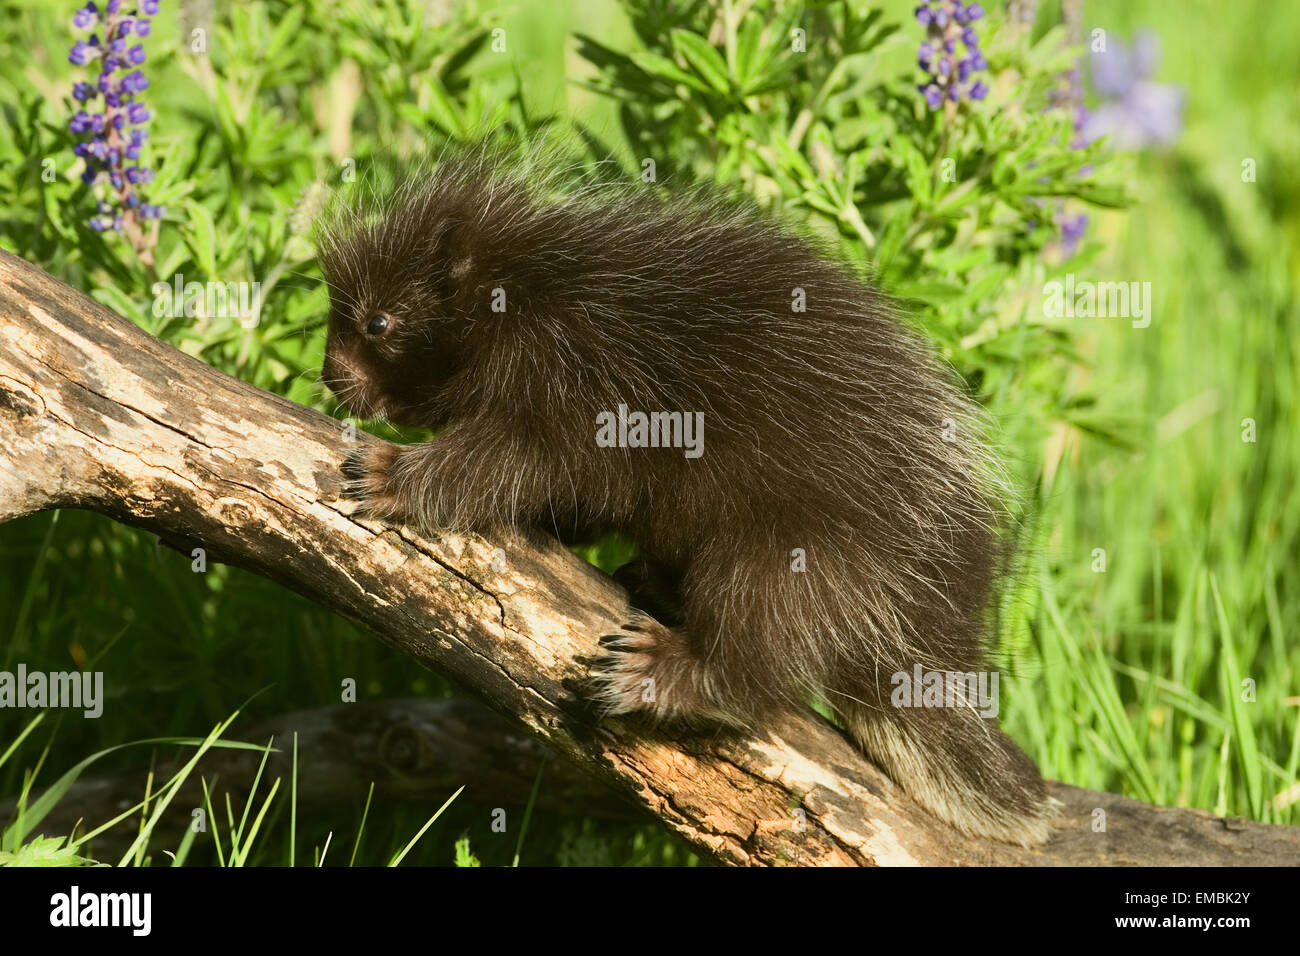 Baby Common Porcupine (Erethizon dorsatum) climbing on a log in the meadow filled with wildflowers. Stock Photo